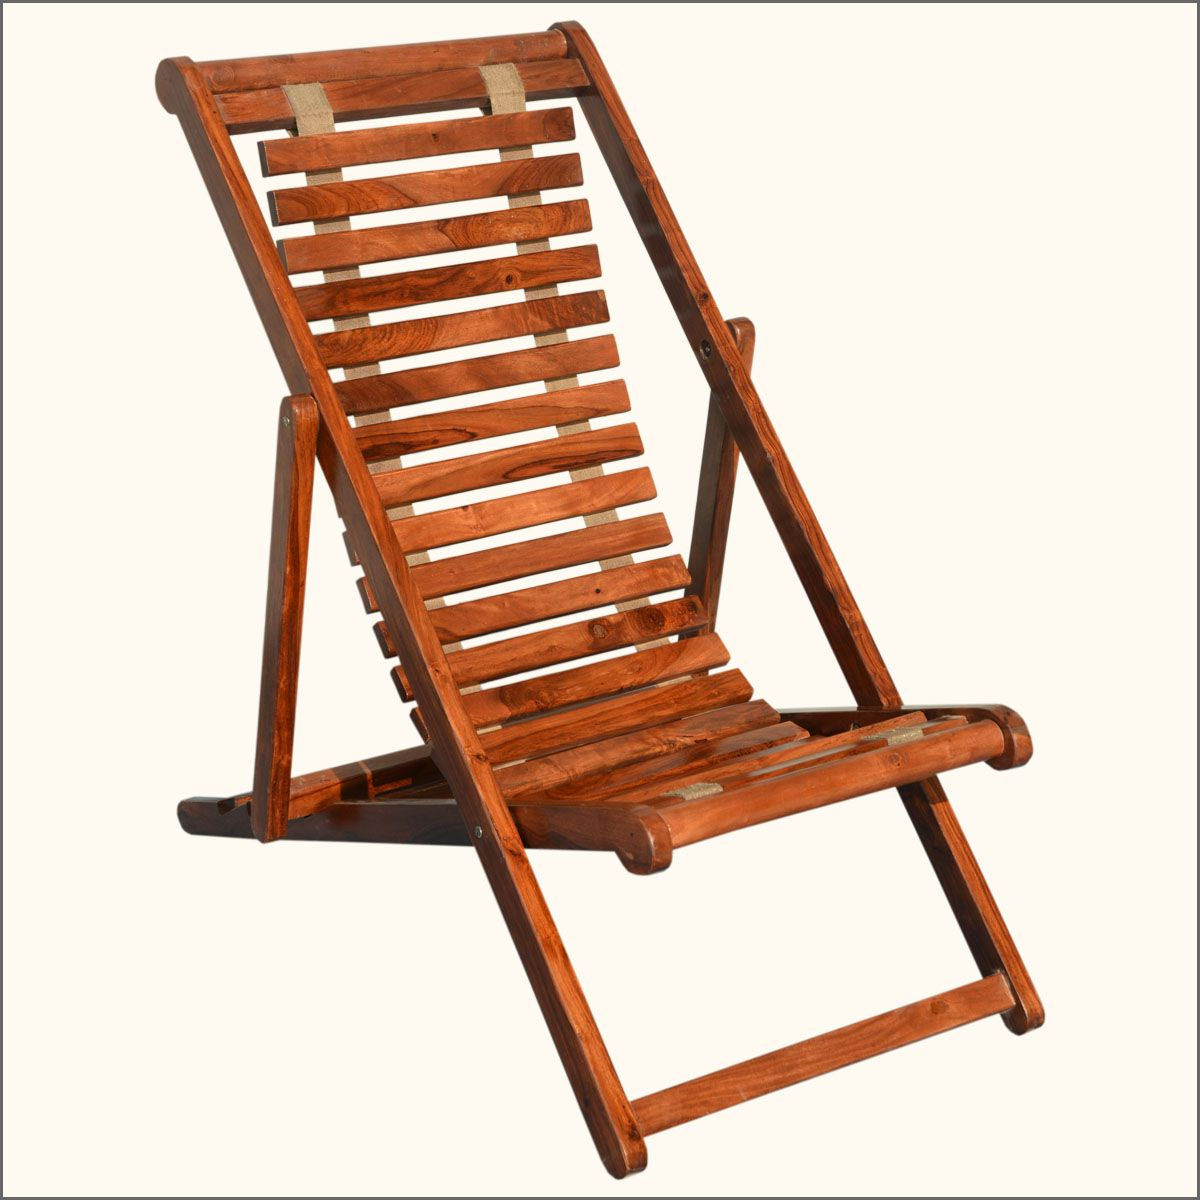 Benches Pertaining To Well Known Amazonia Copacabana Wood Swing Chairs (Gallery 8 of 25)